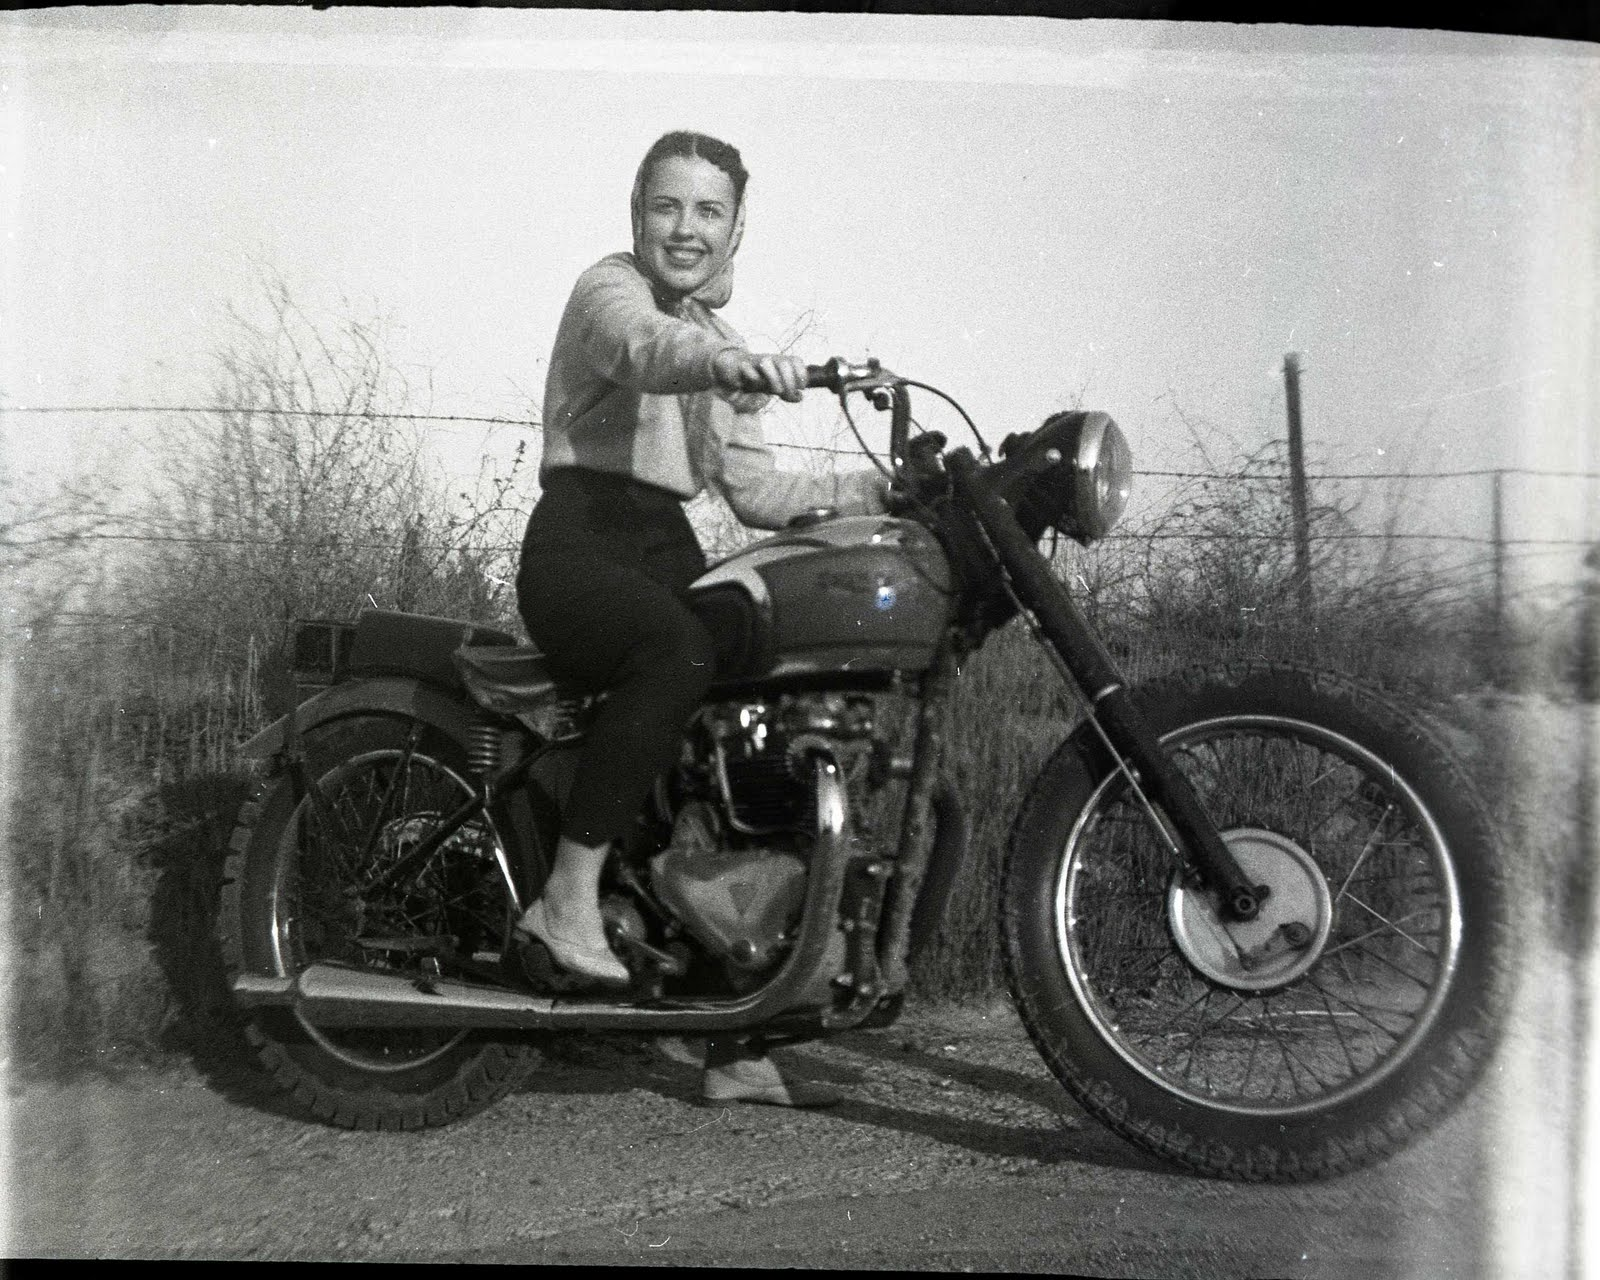 Brunette Woman on a Motorcycle